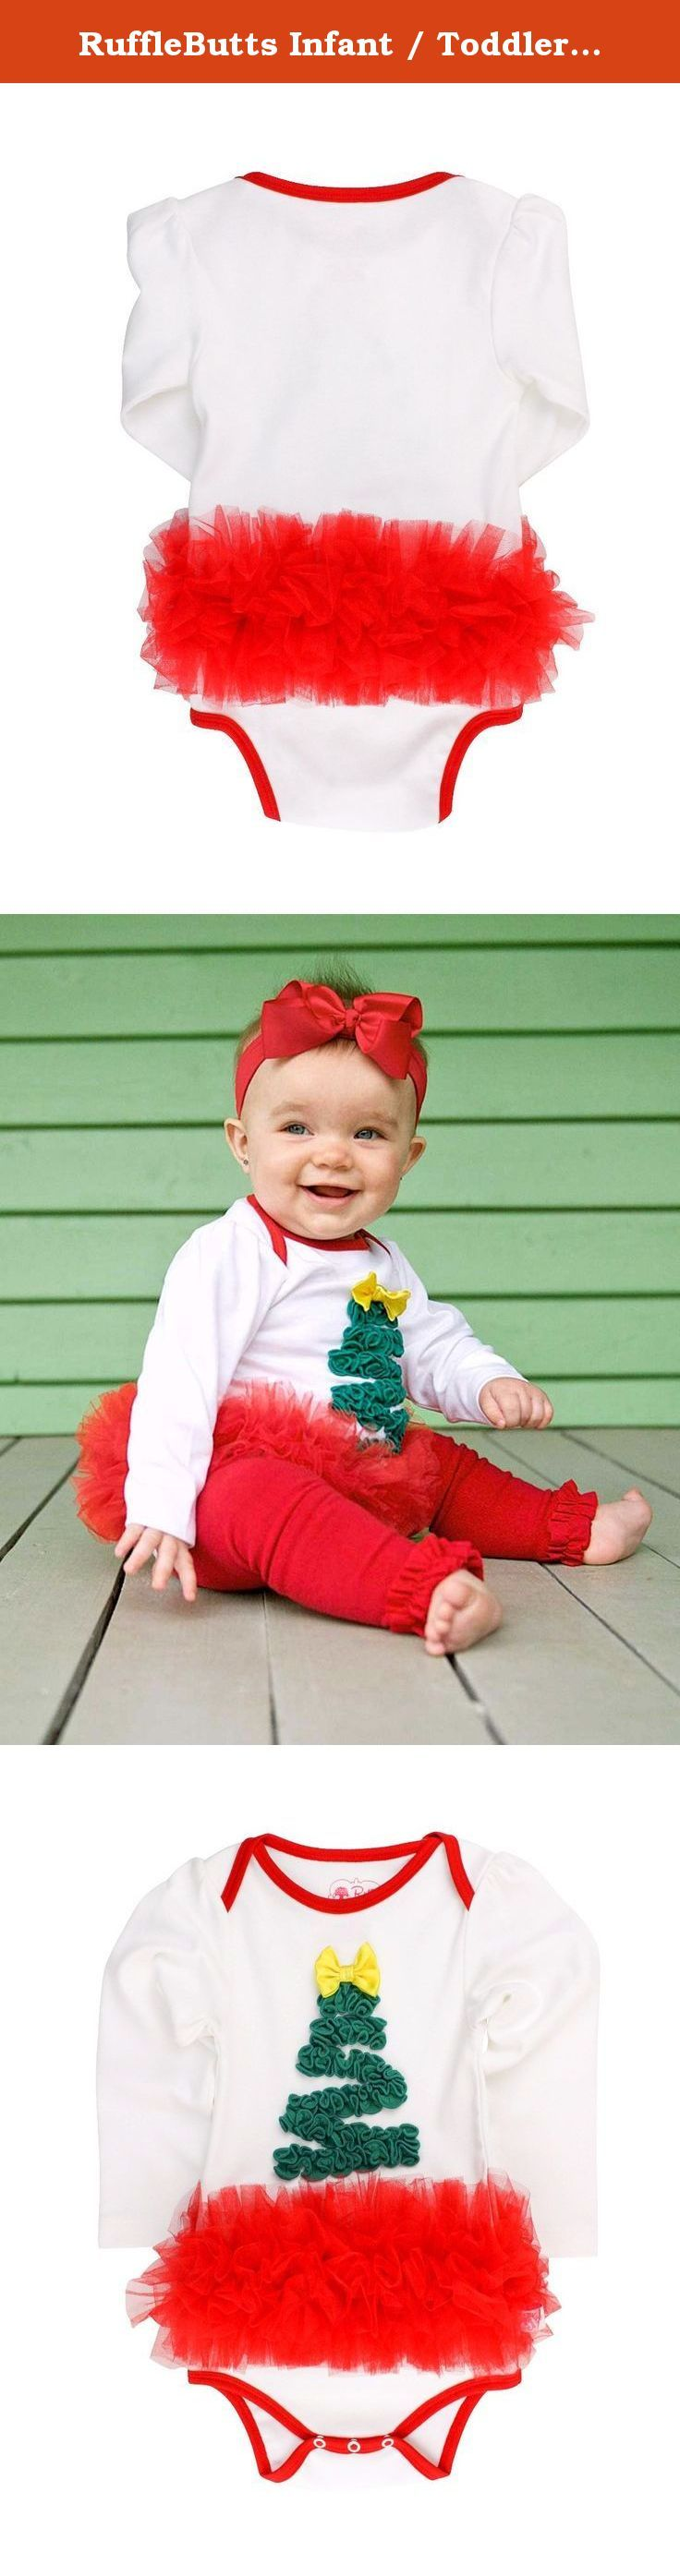 RuffleButts Infant / Toddler Girls Christmas Tree Tutu Holiday Bodysuit - White - 0-3m. May your days be merry and bright with this ruffled Christmas tree long sleeve one-piece. The tutu skirt adds extra holiday cheer. Pair with Footless Ruffle Tights for an outfit that is sure to keep your little sweetie cute and warm!.